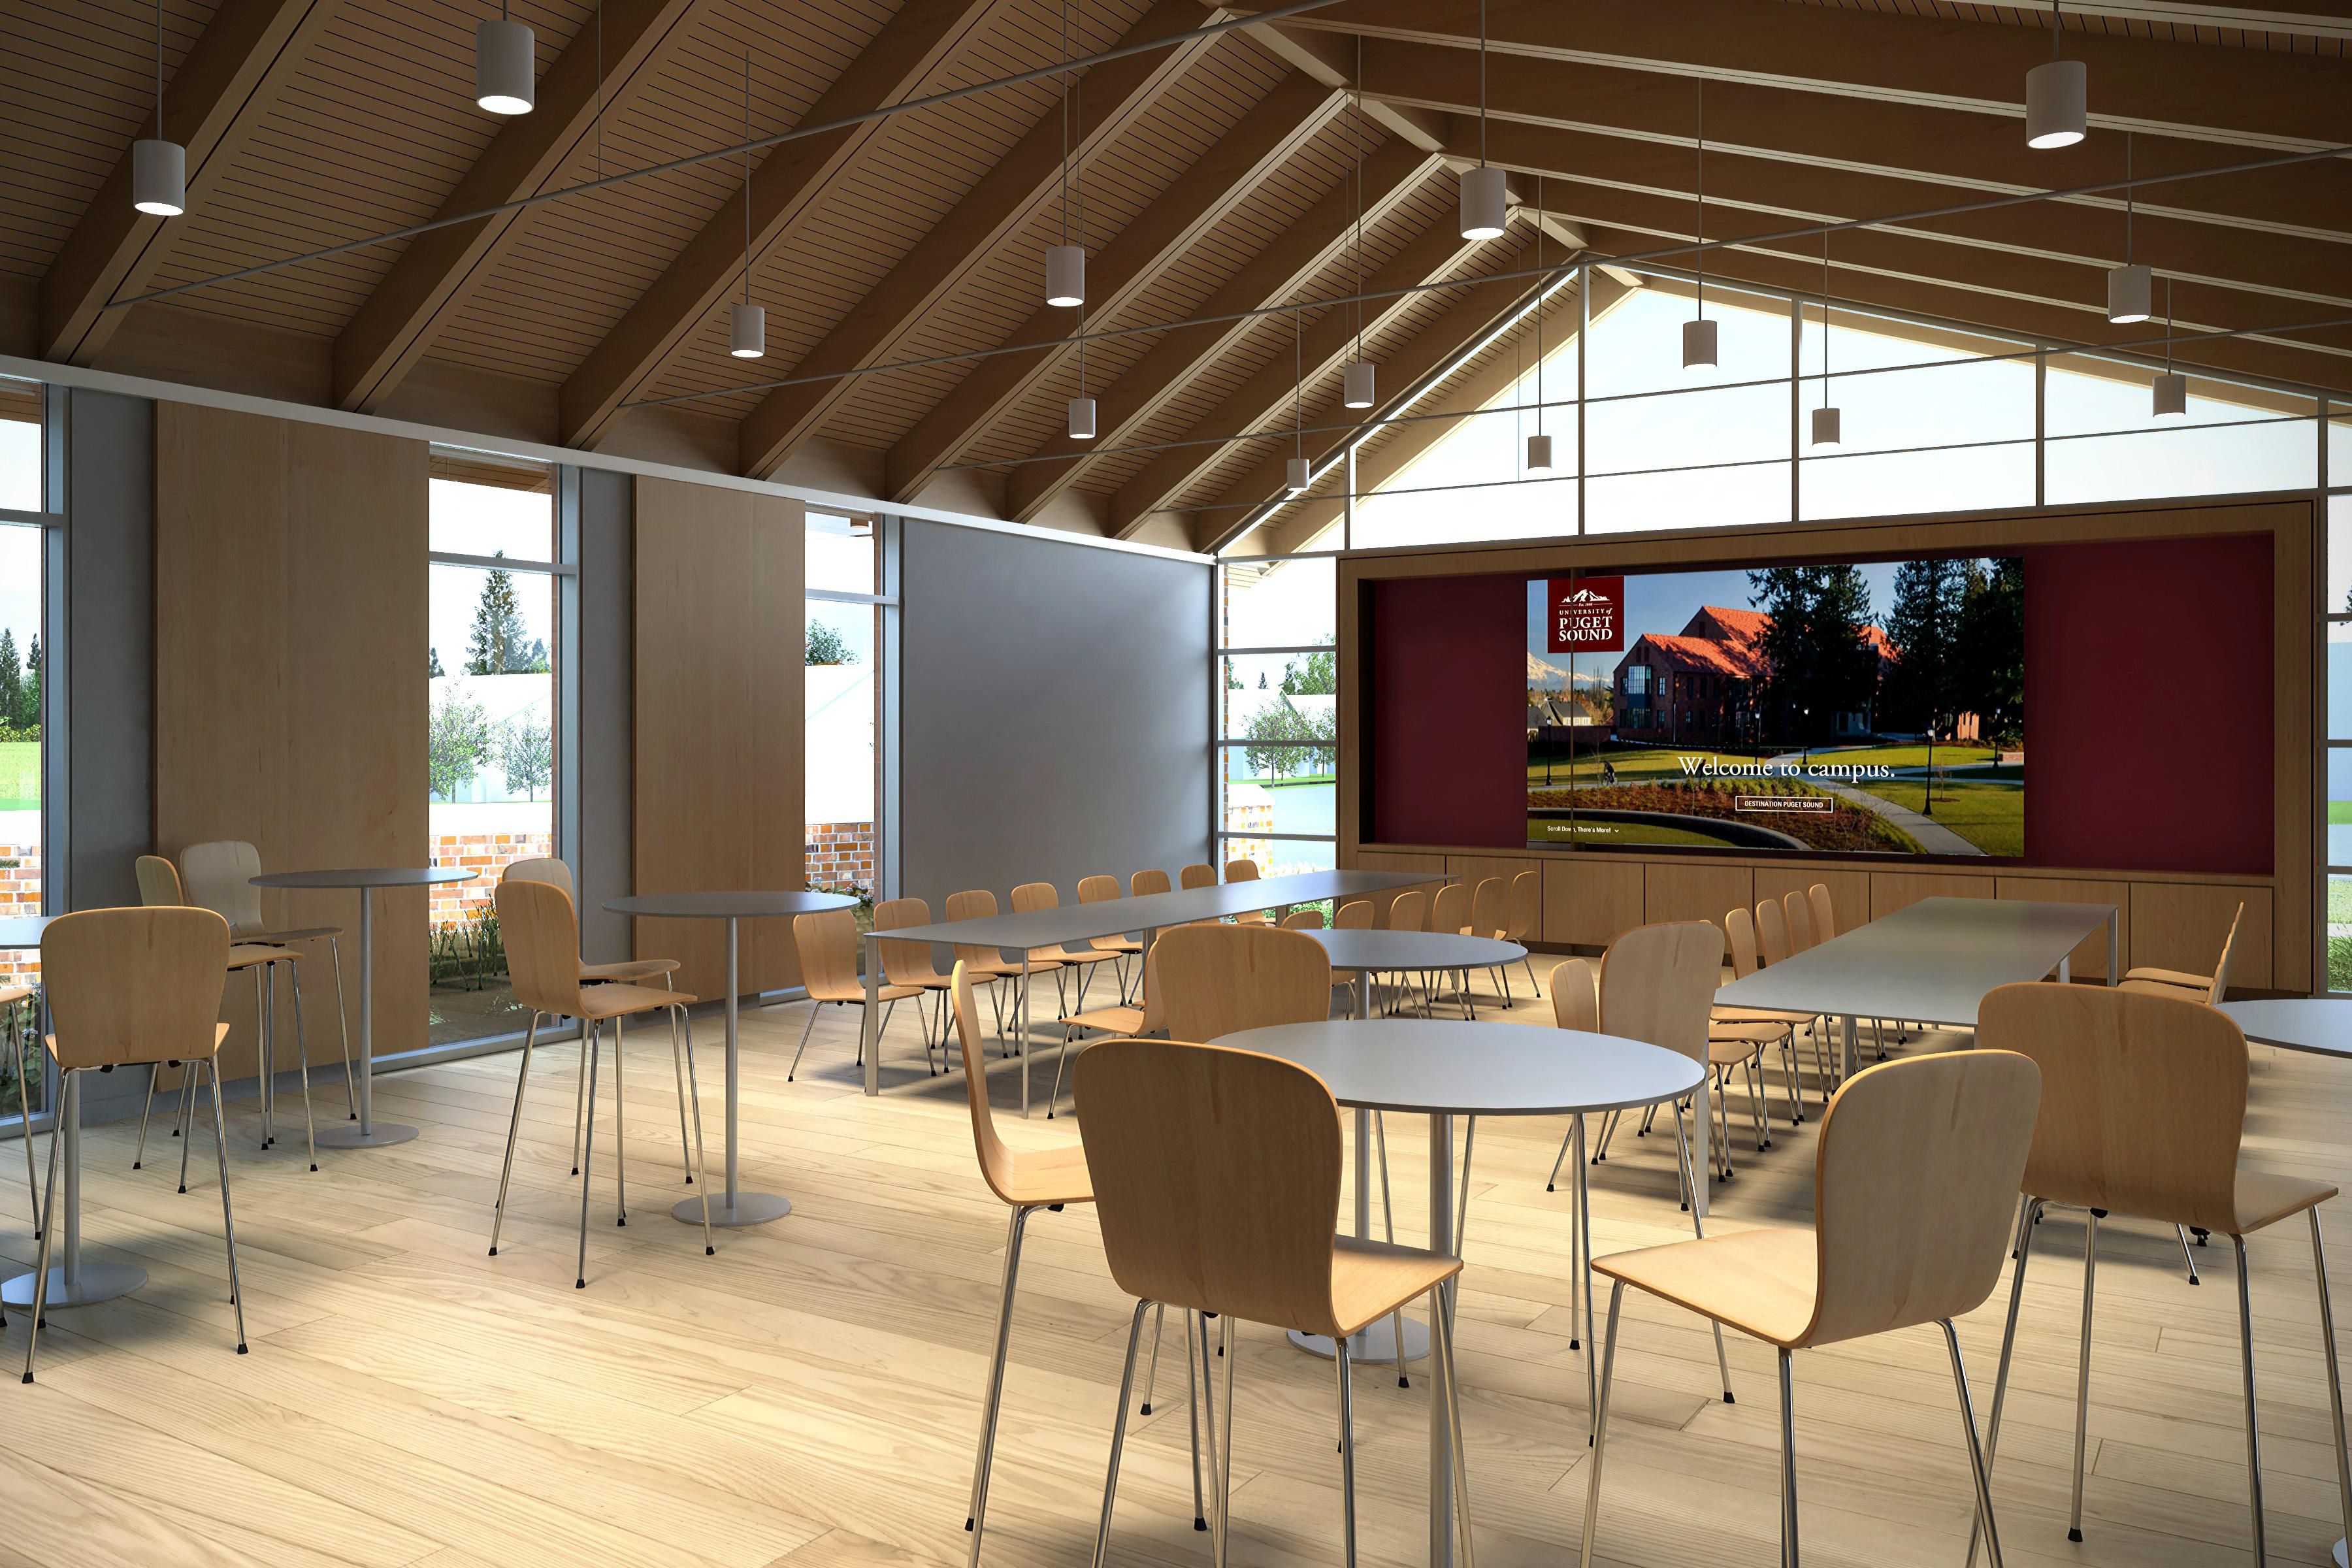 Welcome Center Renderings